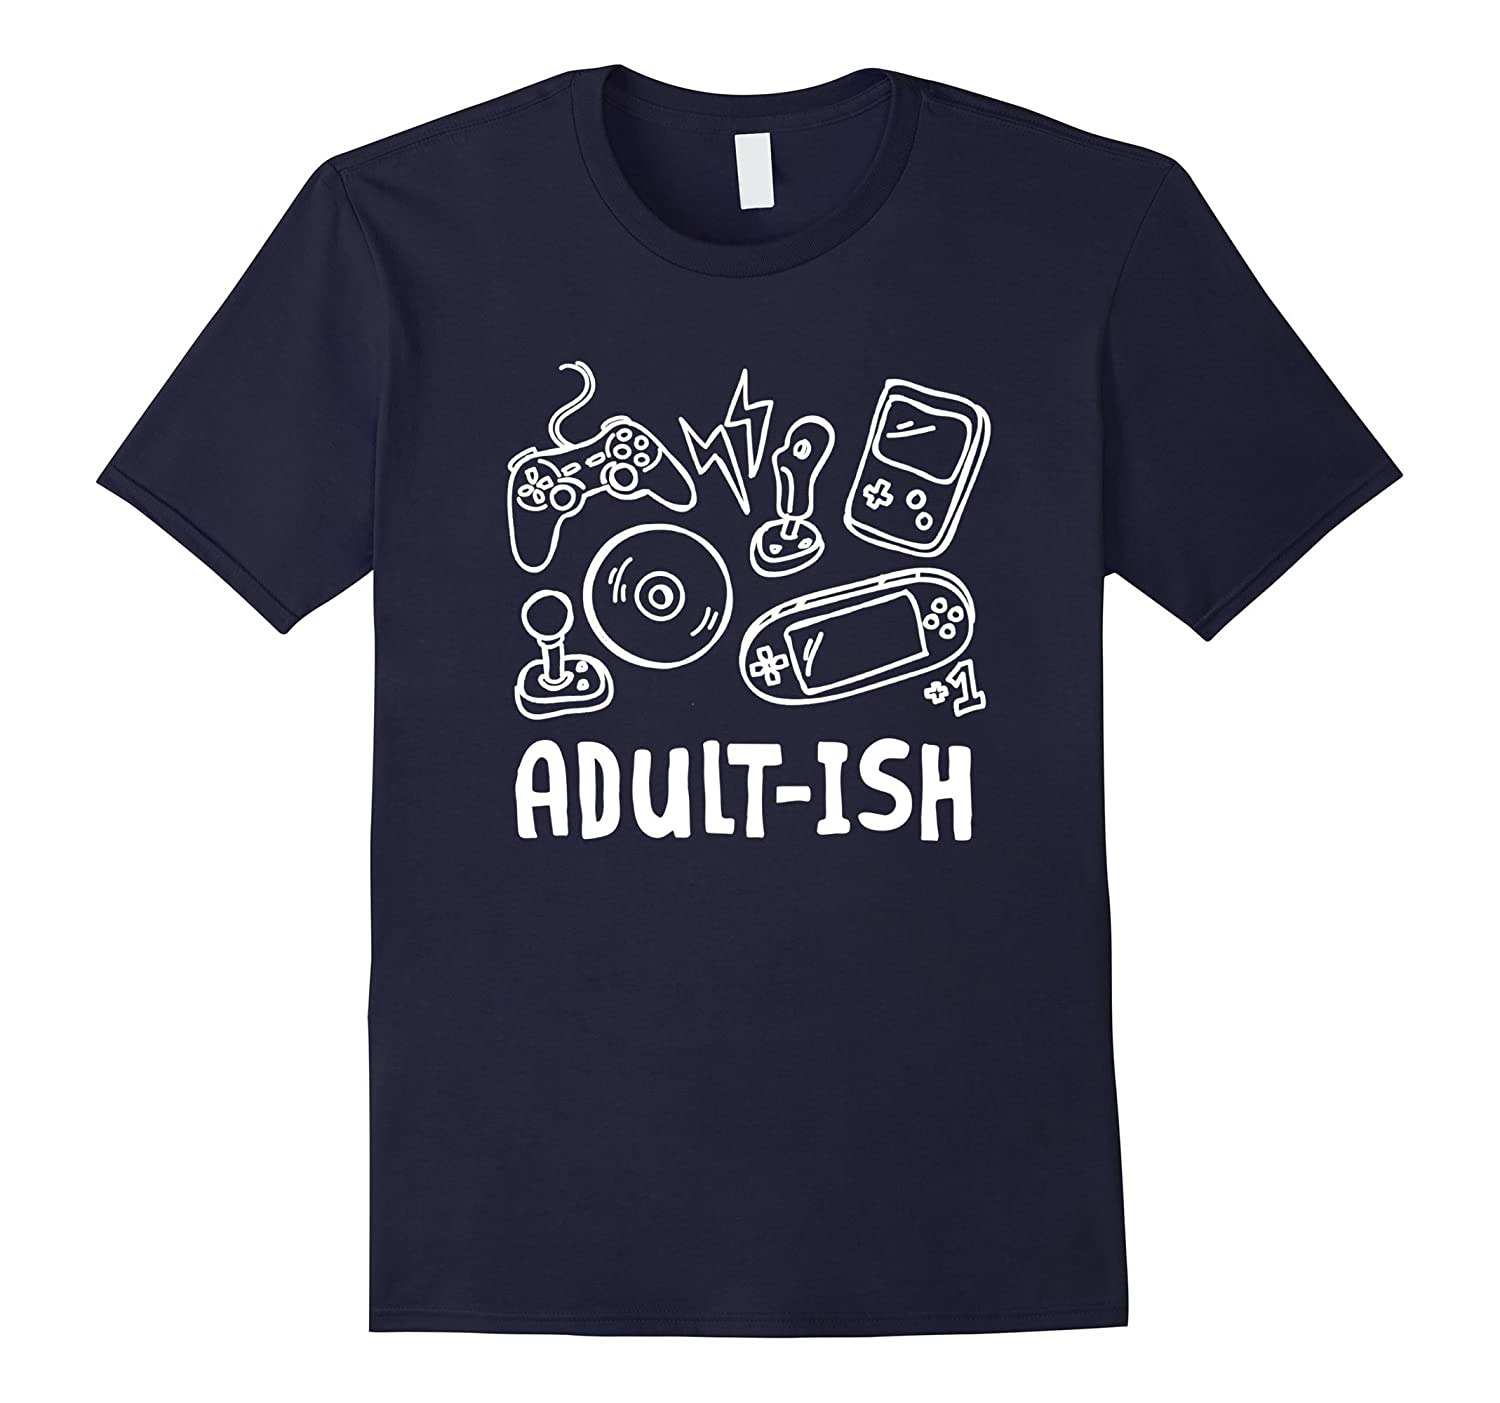 Adult-ish Adulting Mens or Womens Gaming T-Shirt-TD